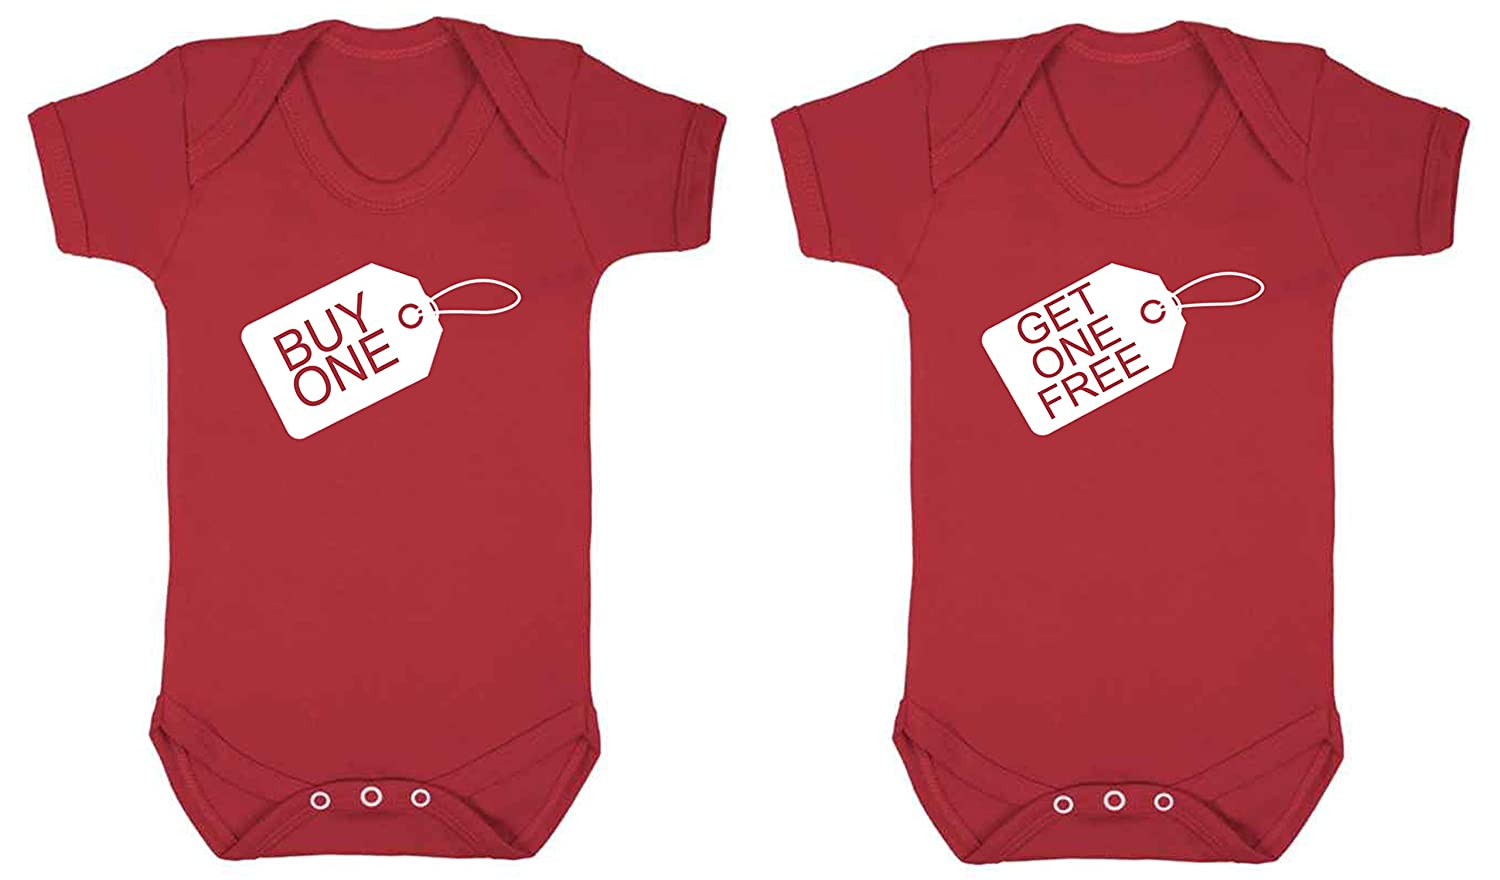 0-3 months, WHITE TWINS Buy one get one free baby vest babygrow 2 pack set